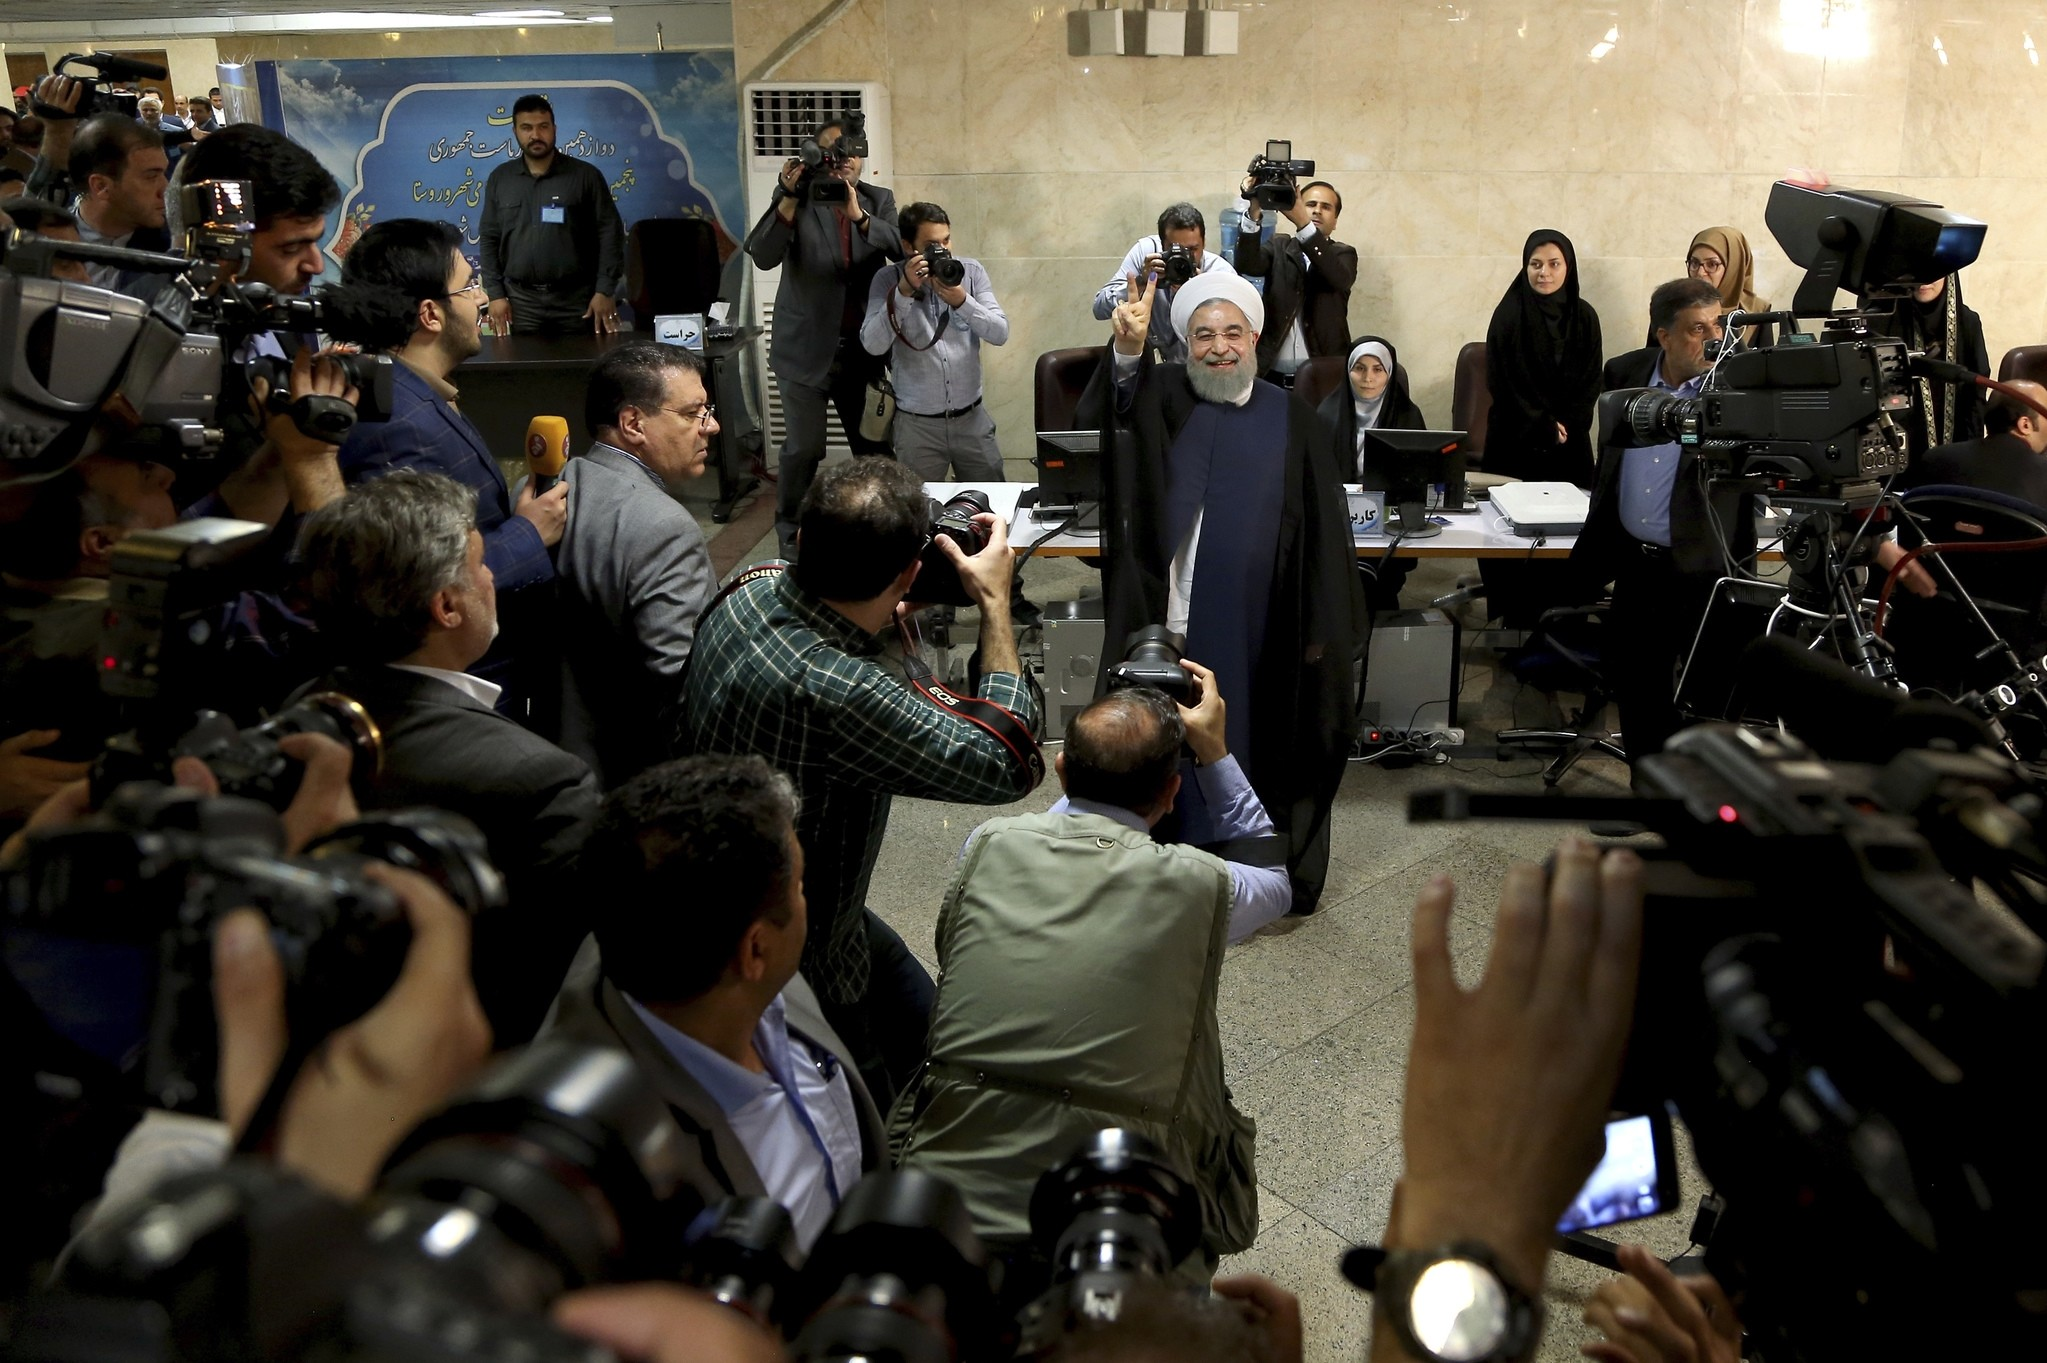 Iranian President Hassan Rouhani waves to media as he attends at the Interior Ministry to register his candidacy for the elections, in Tehran, Iran. (AP Photo)